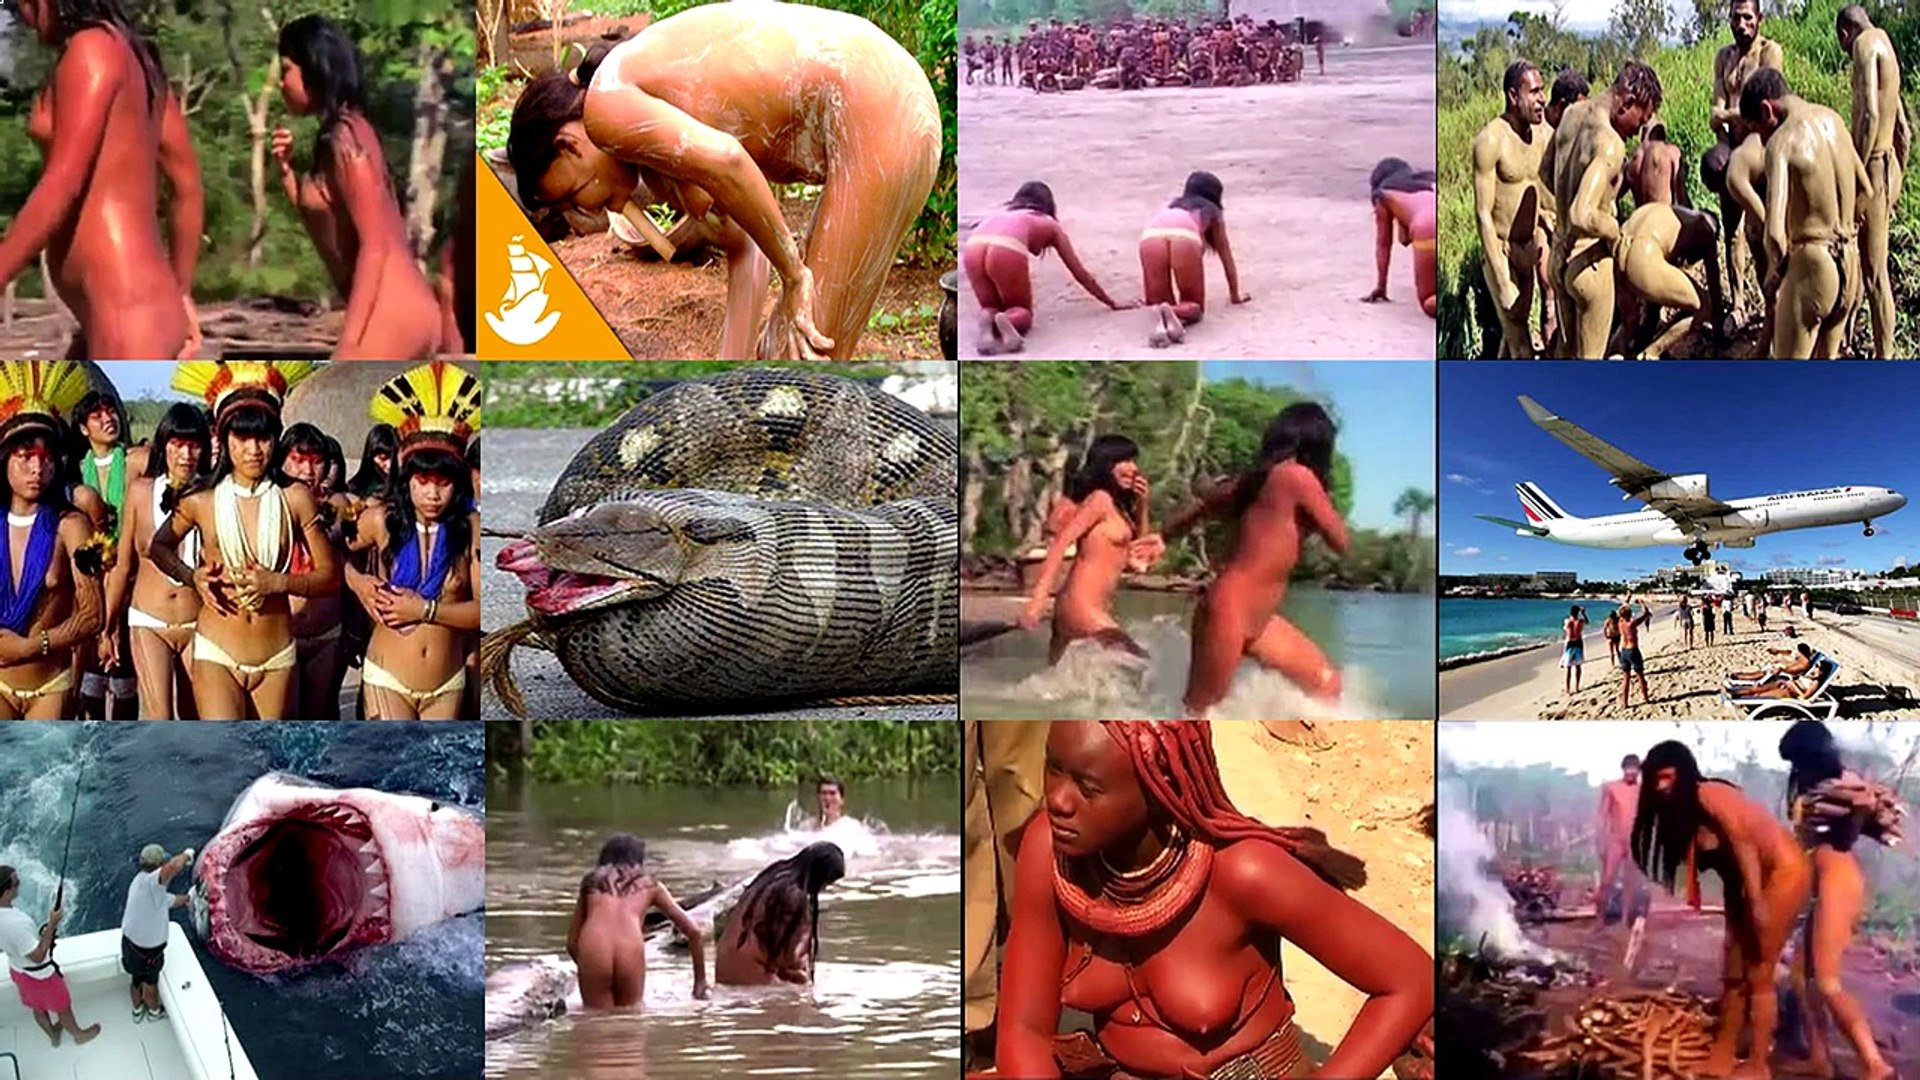 Yanomami Tribes Amazon 2016 People People Video in Amazon Rain Forest